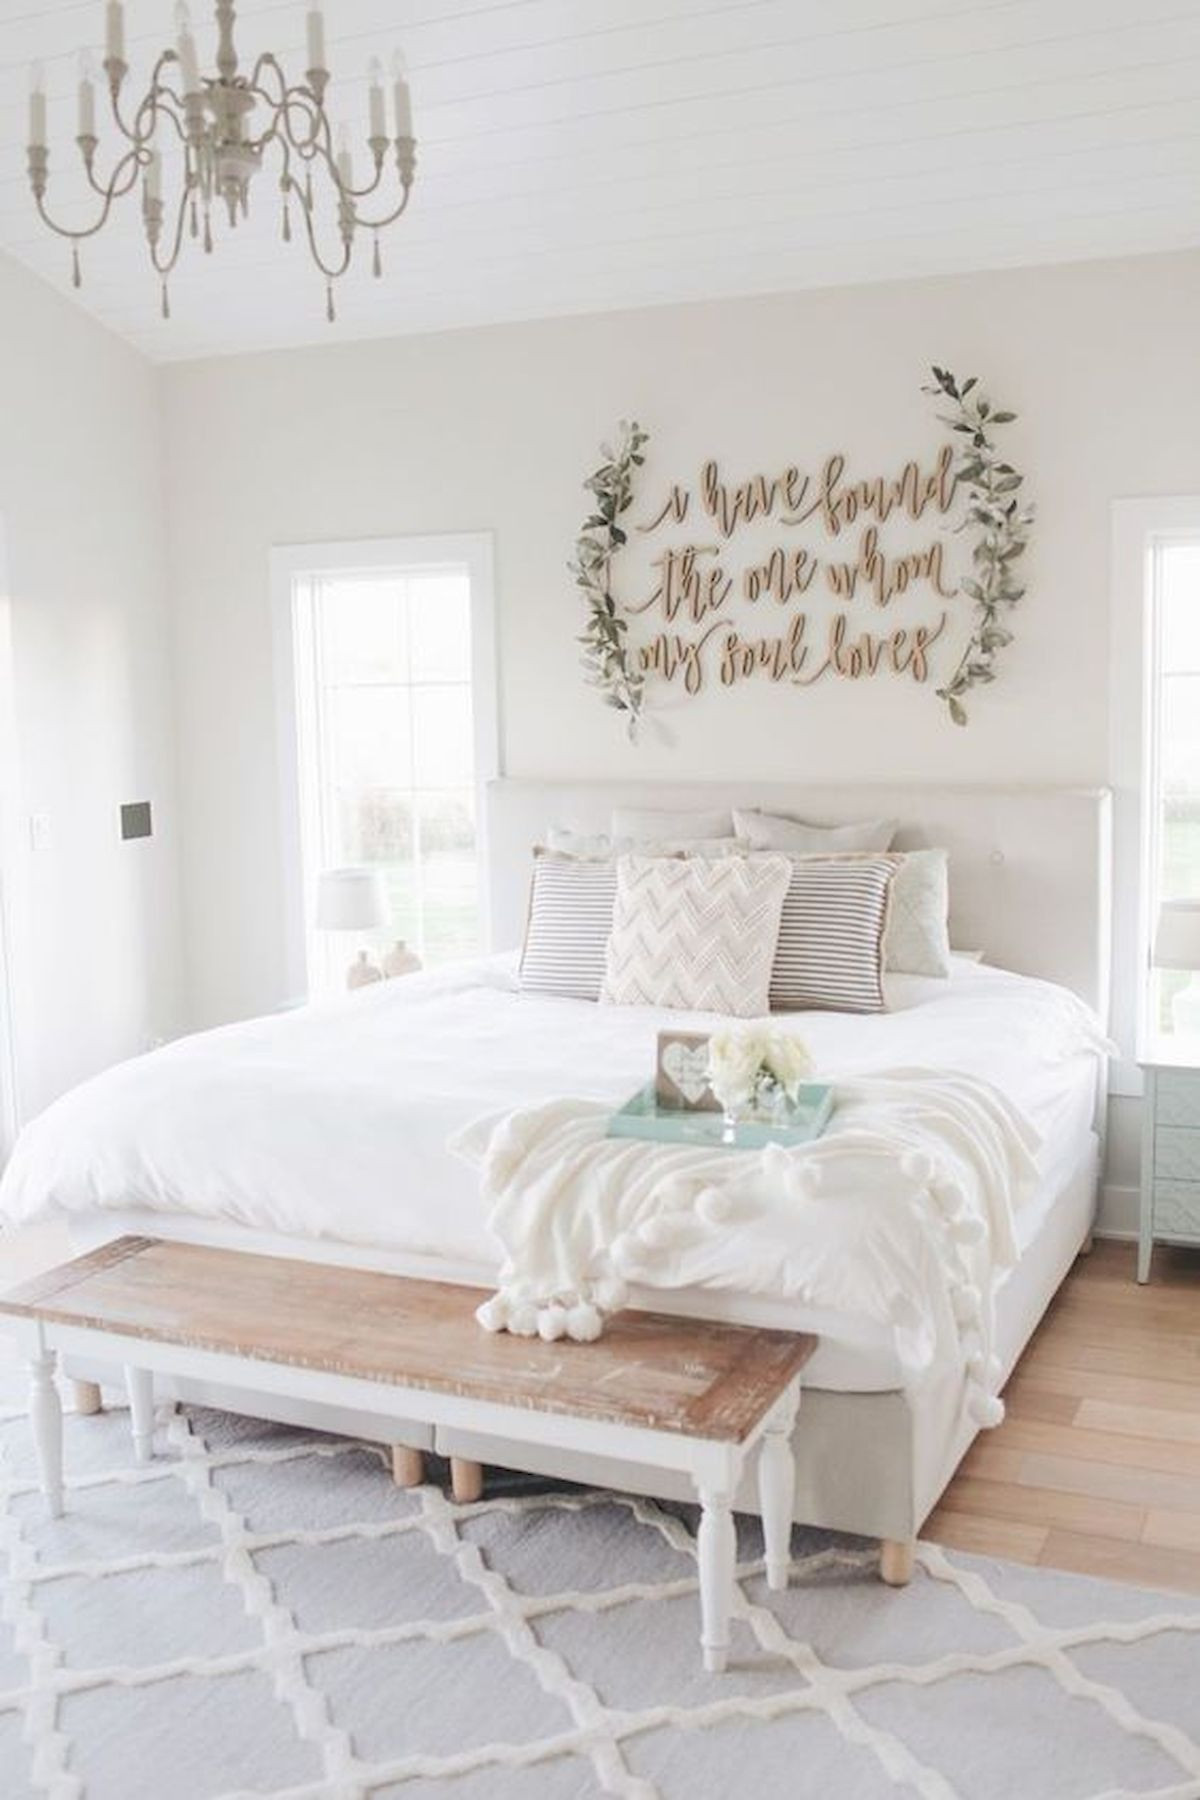 Wall Prints For Bedroom  53 Best Farmhouse Wall Decor Ideas for bedroom Ideaboz